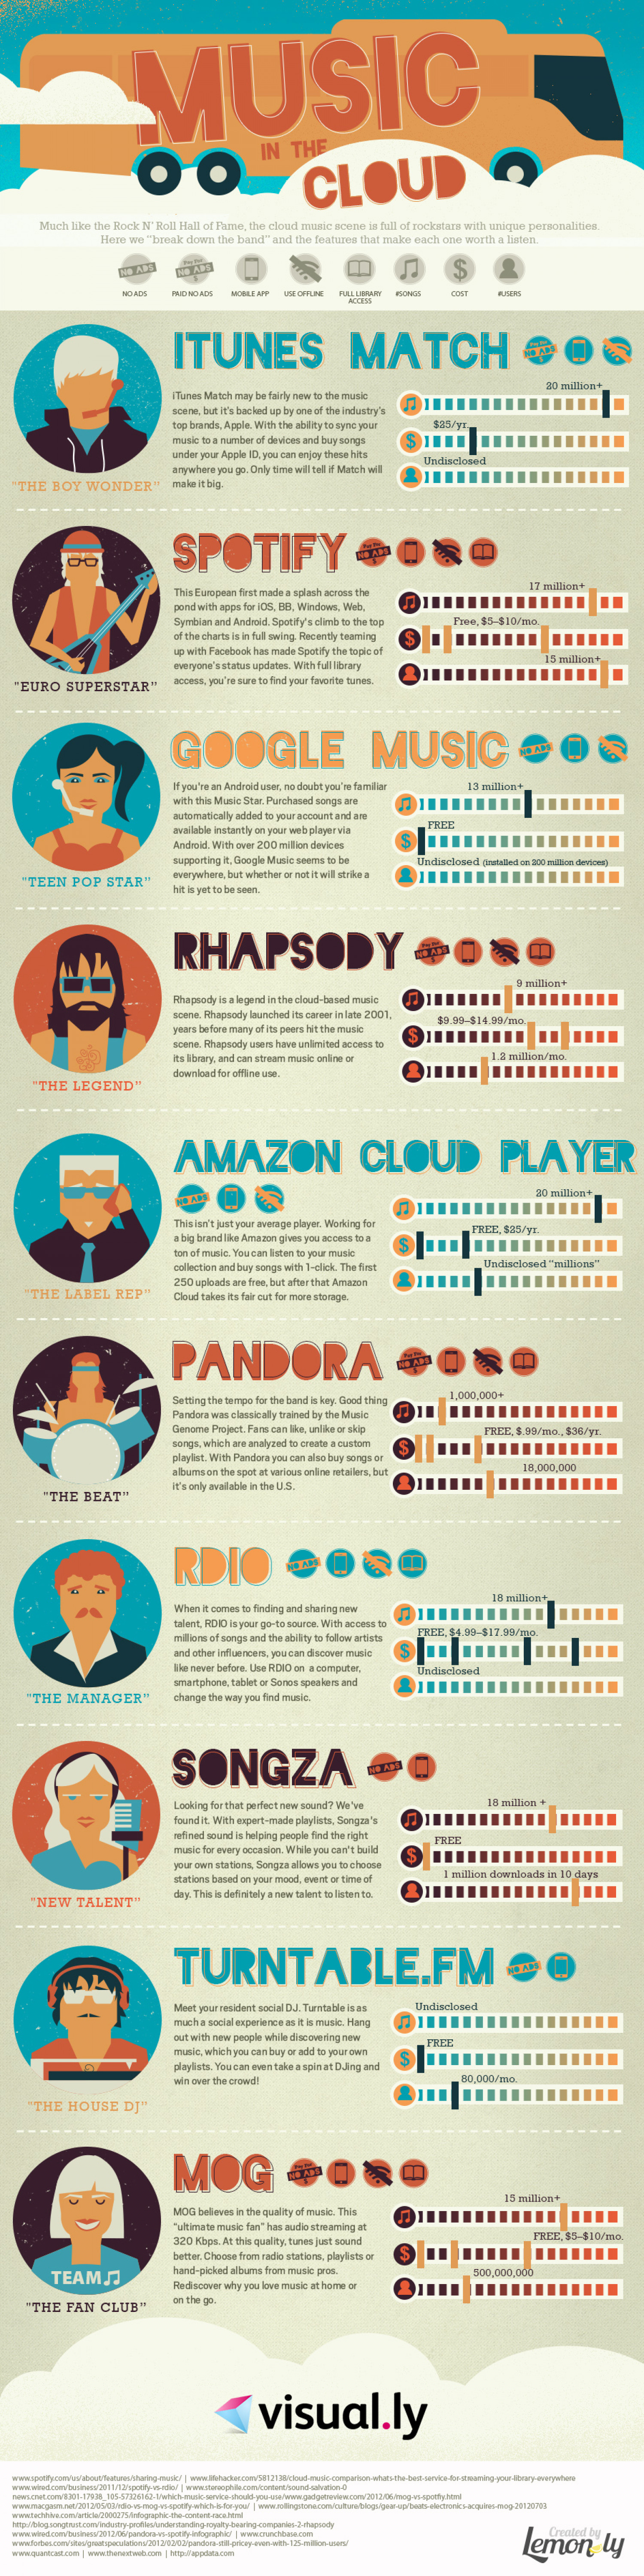 Music in the Cloud Infographic